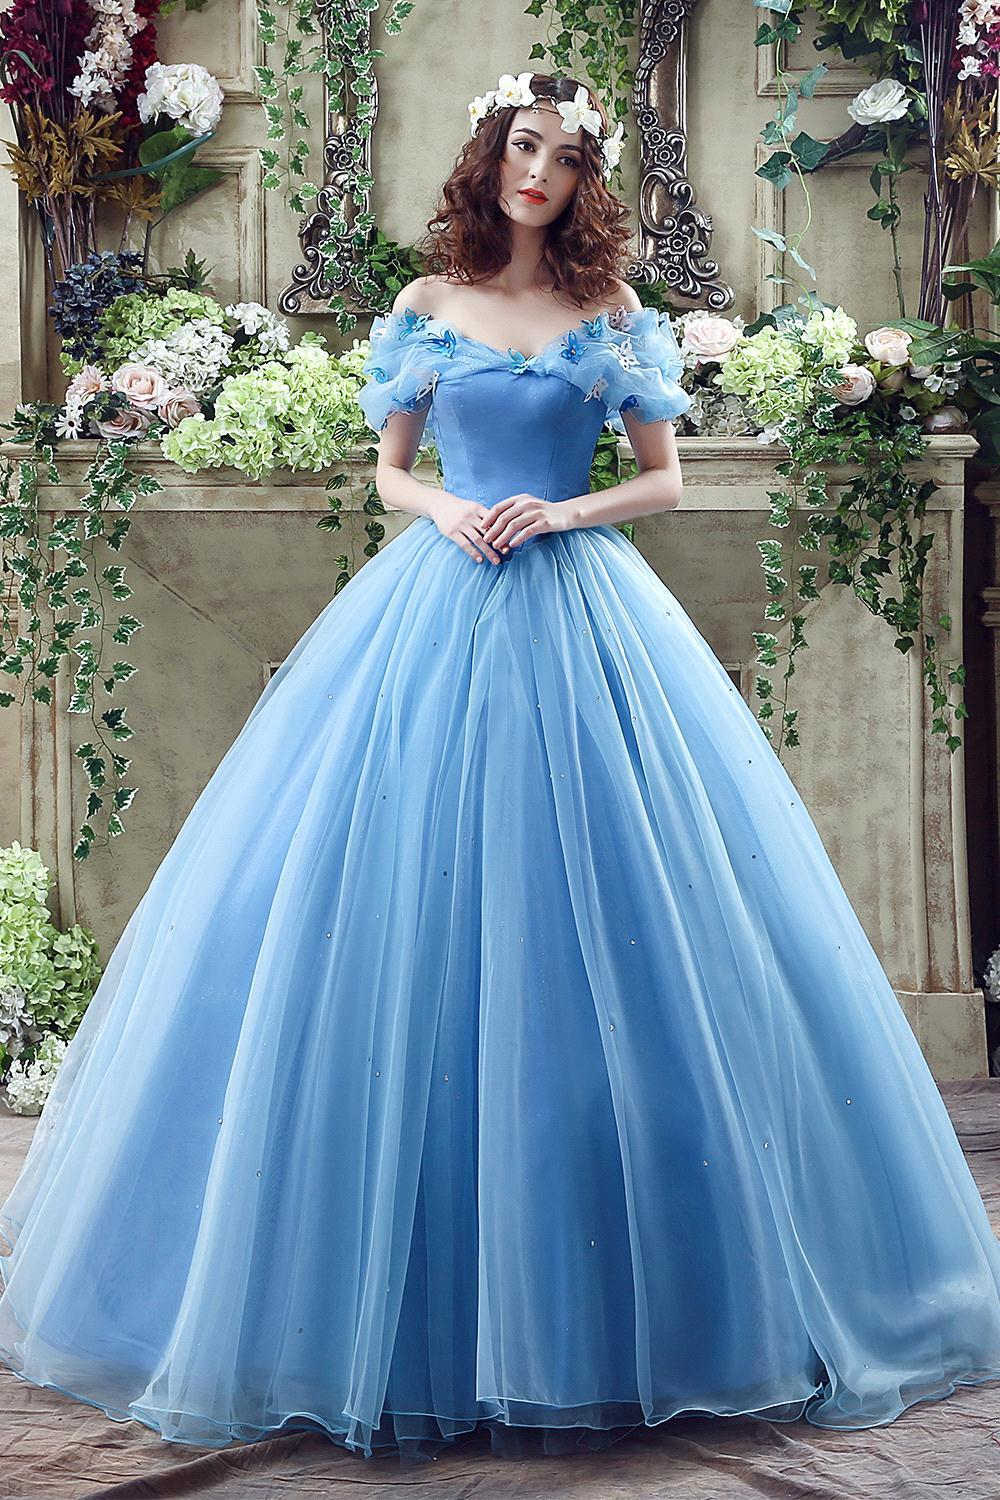 Princess Off-the-Shoulder Sequins Tulle Ball Gown Wedding Dress 2021 On Sale_2021 Wedding Dresses_Wedding Dresses_High Quality Wedding Dresses, Prom D